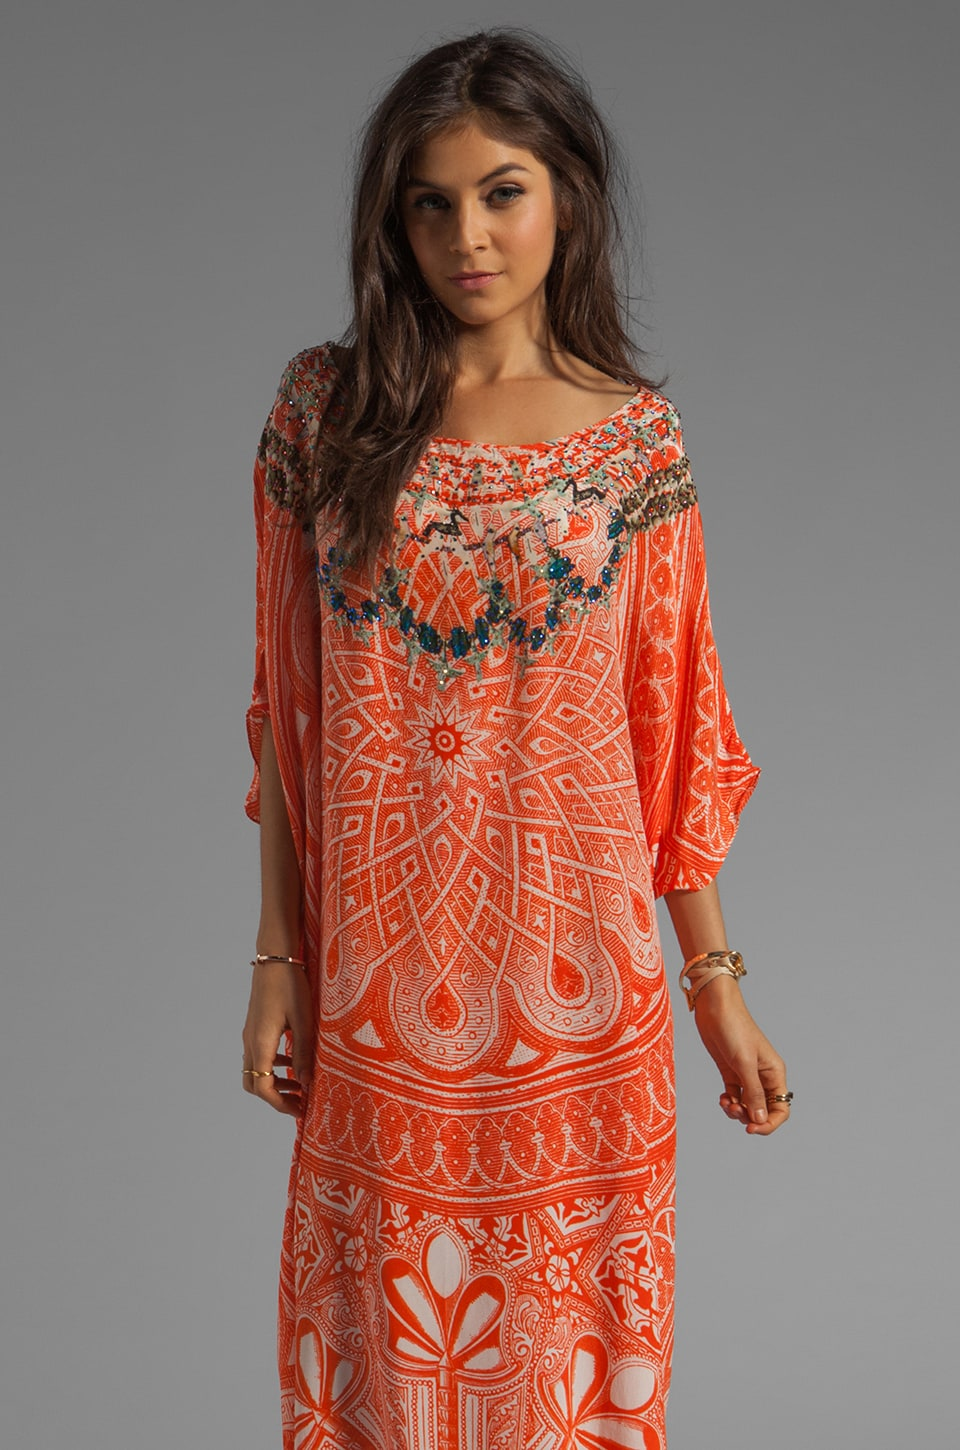 Camilla Road to Nowhere Round Neck Kaftan in Essaouira